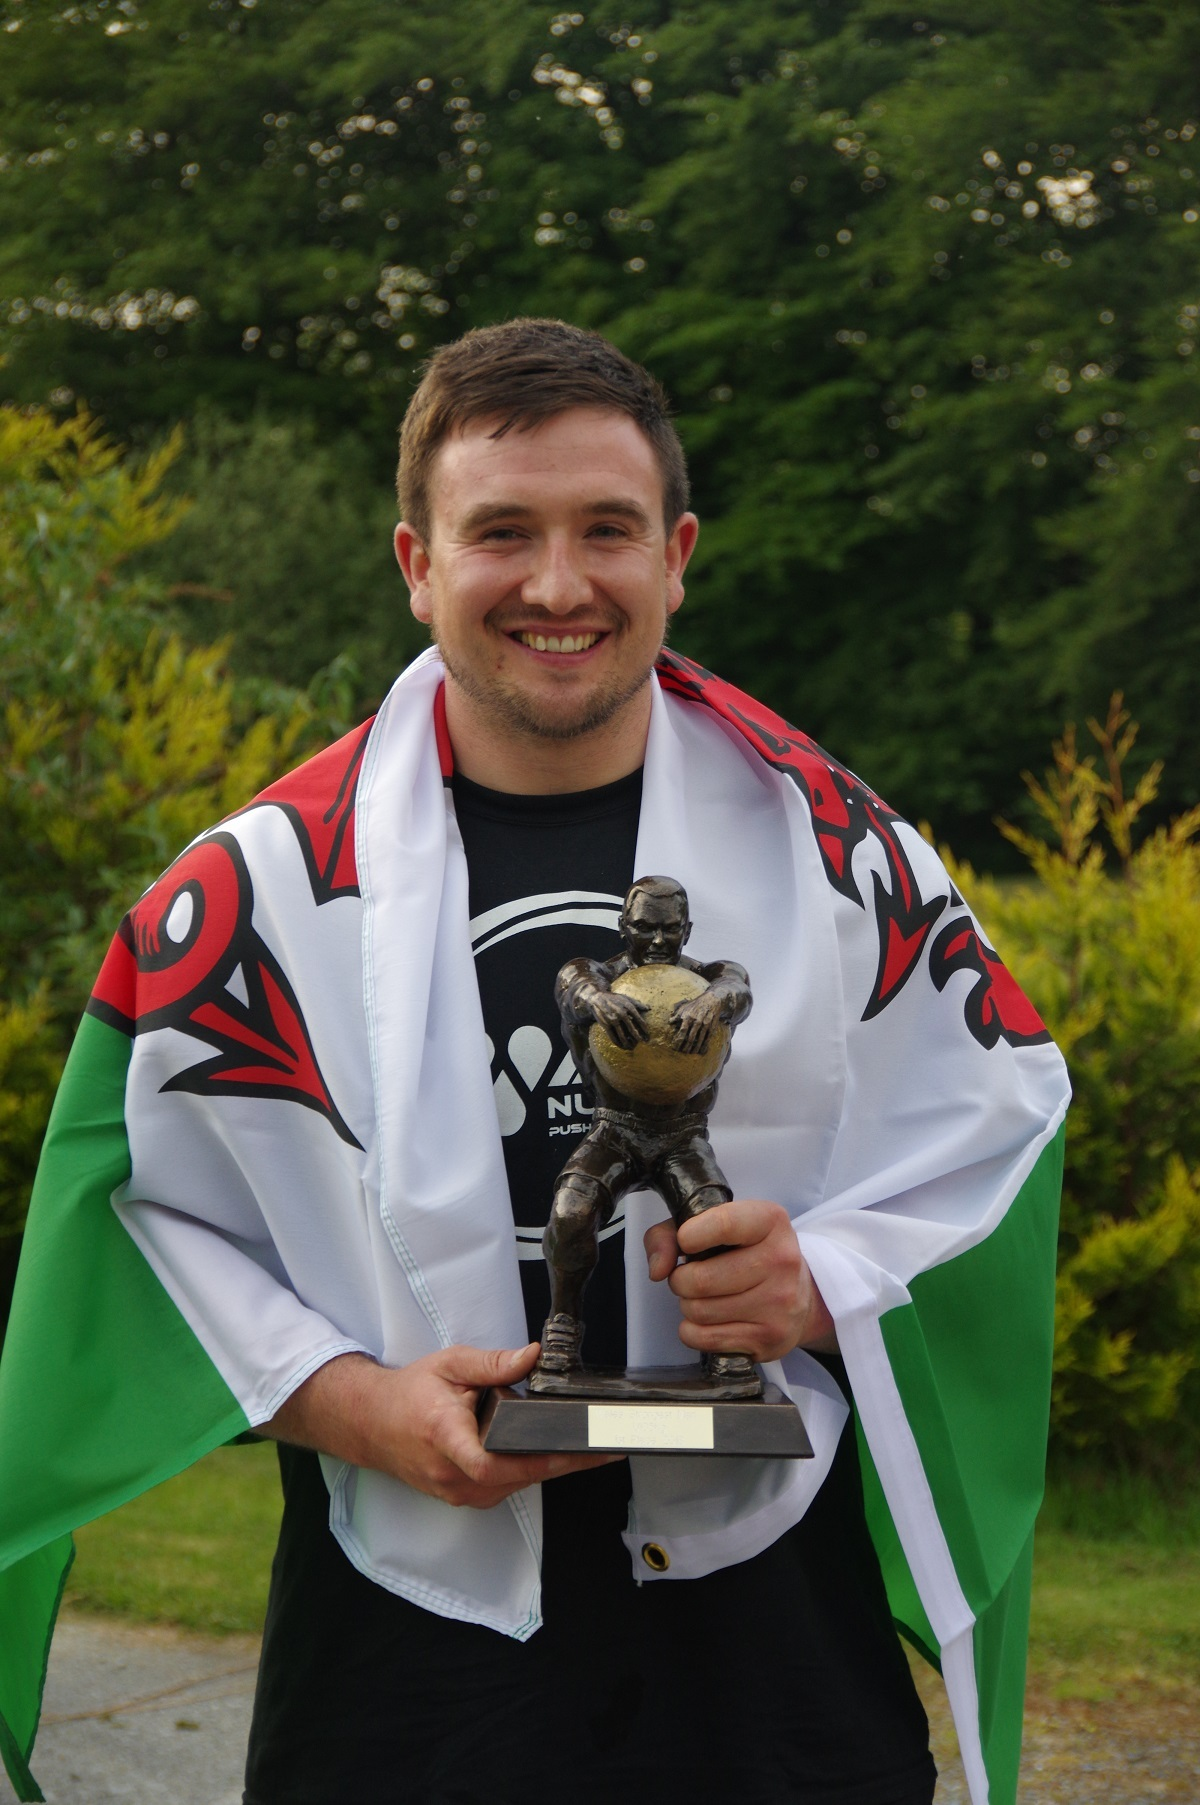 Cris Davies has been crowned Wales' strongest man